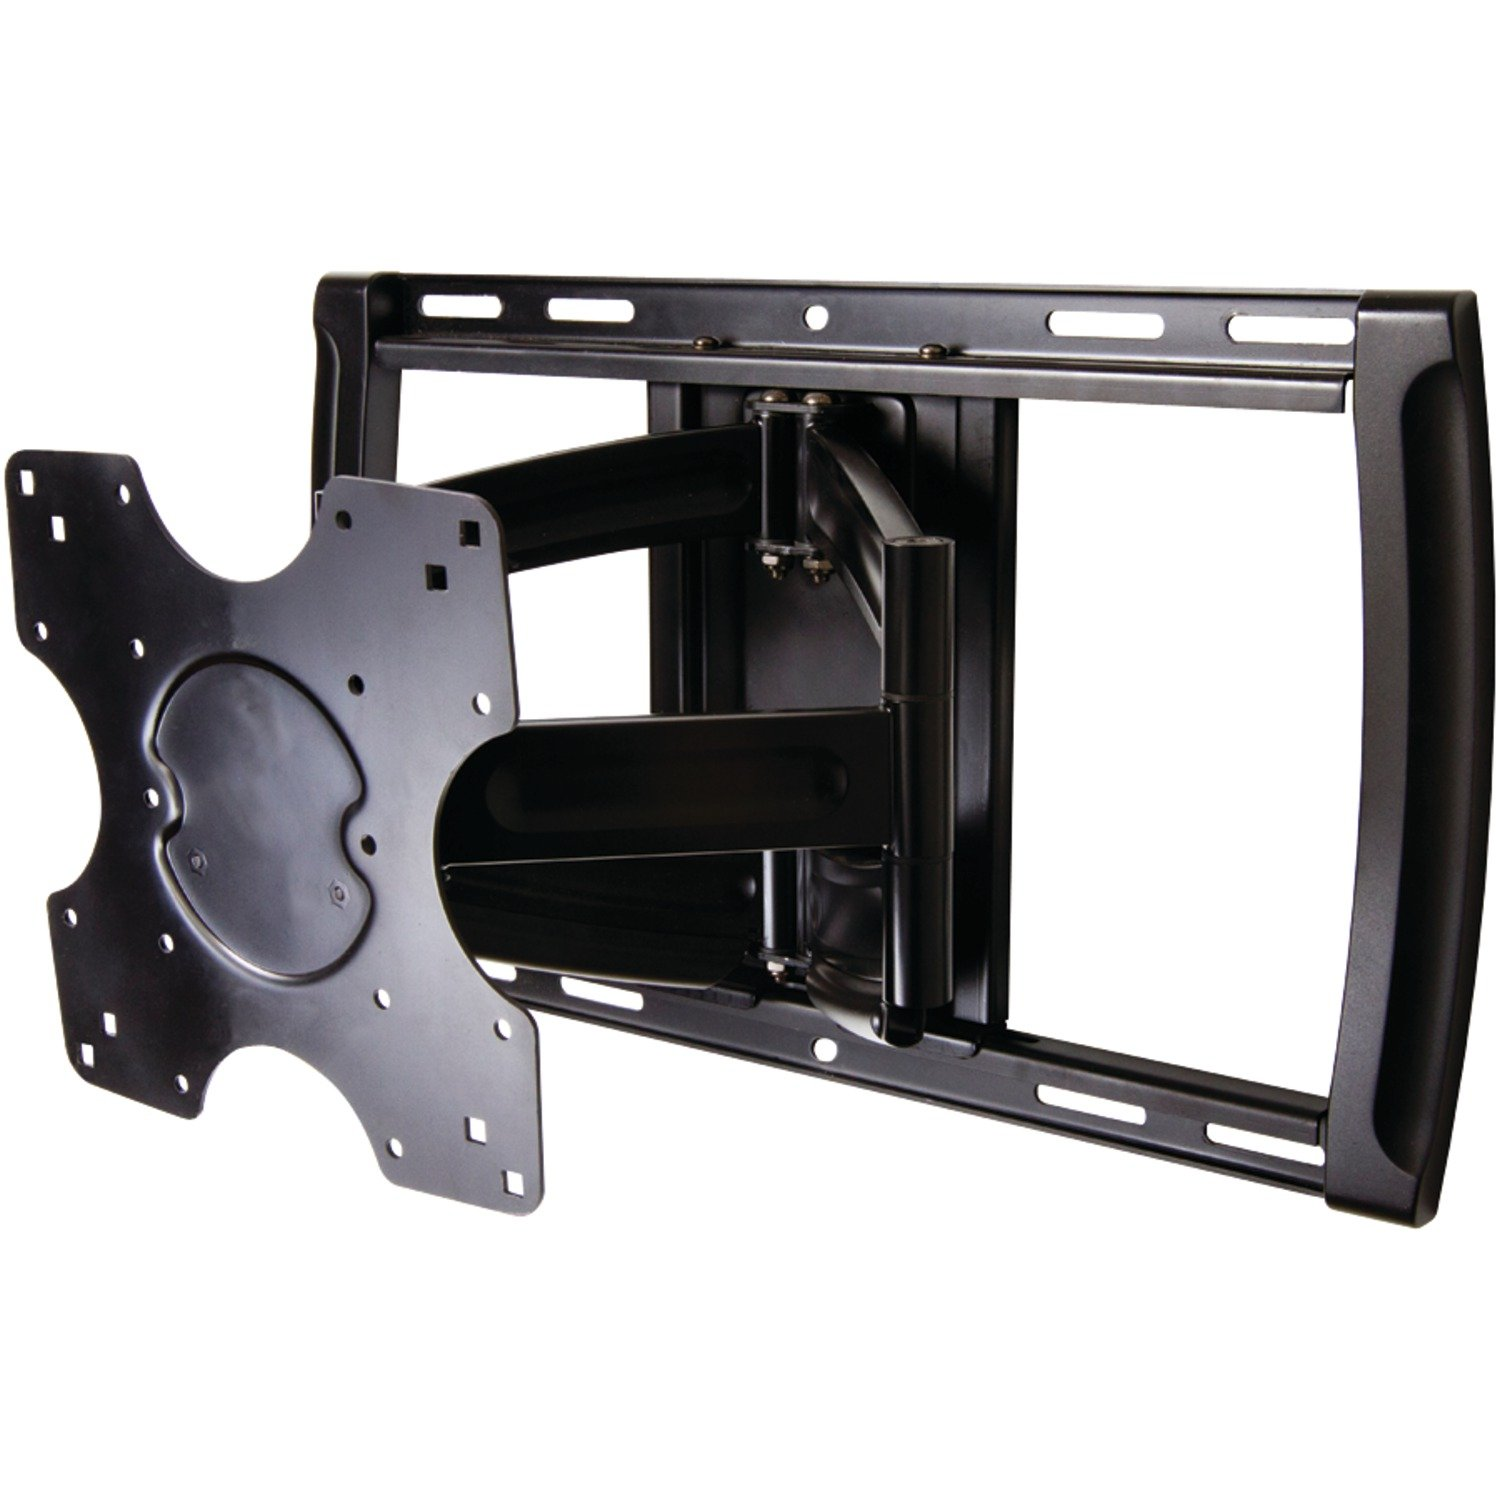 OmniMount OS120FM Full Motion TV Mount for 42-Inch to 70-Inch TVs